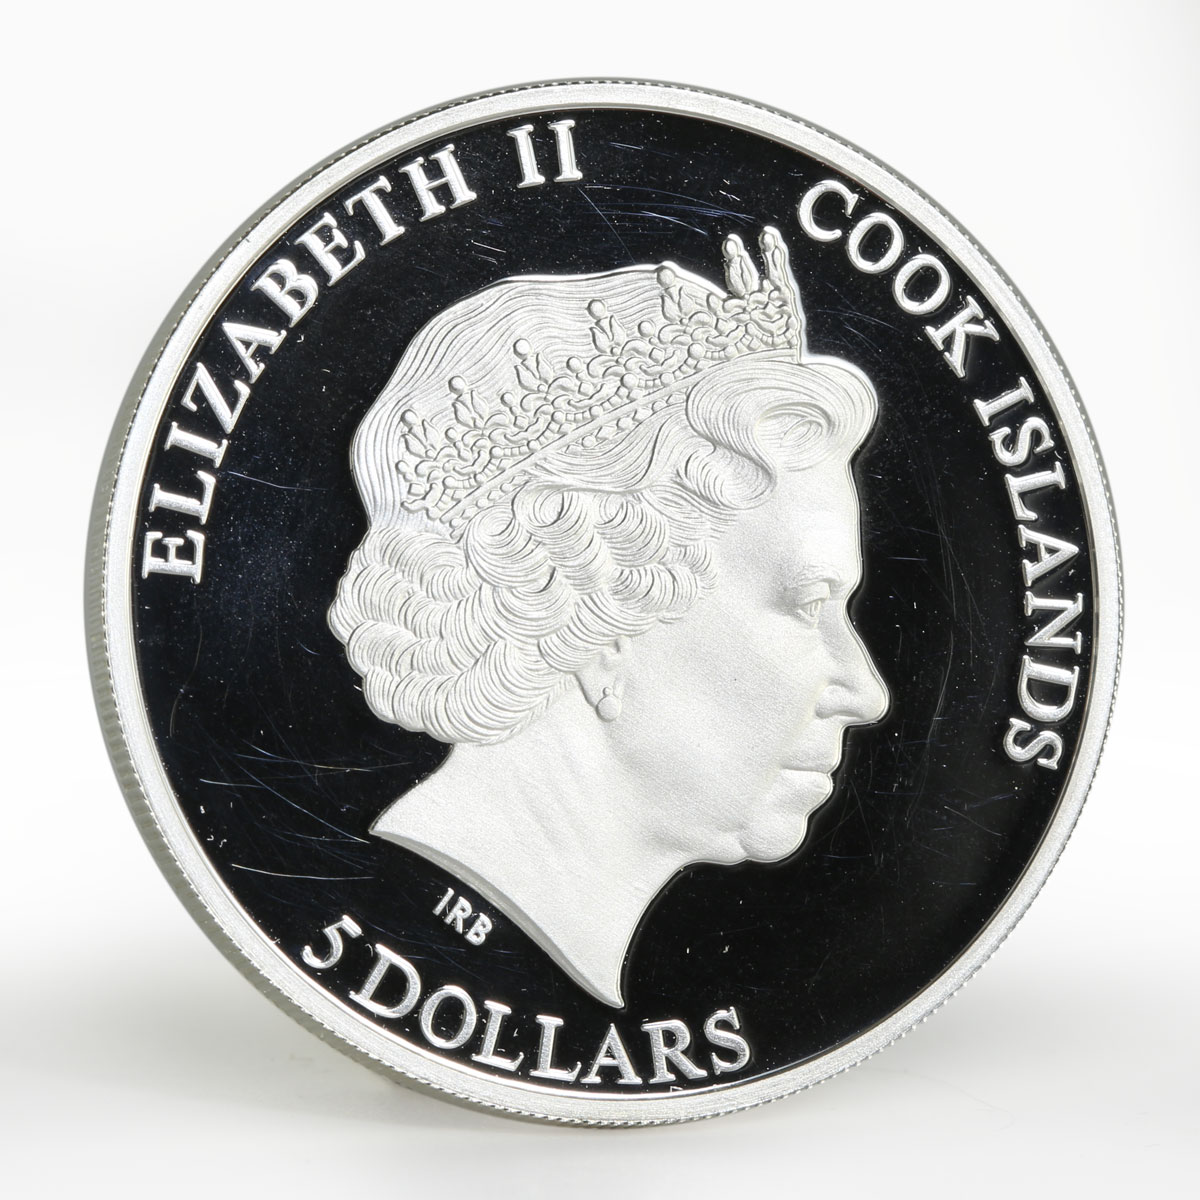 Cook Islands 5 dollars Khokhloma Painting colored proof silver coin 2011